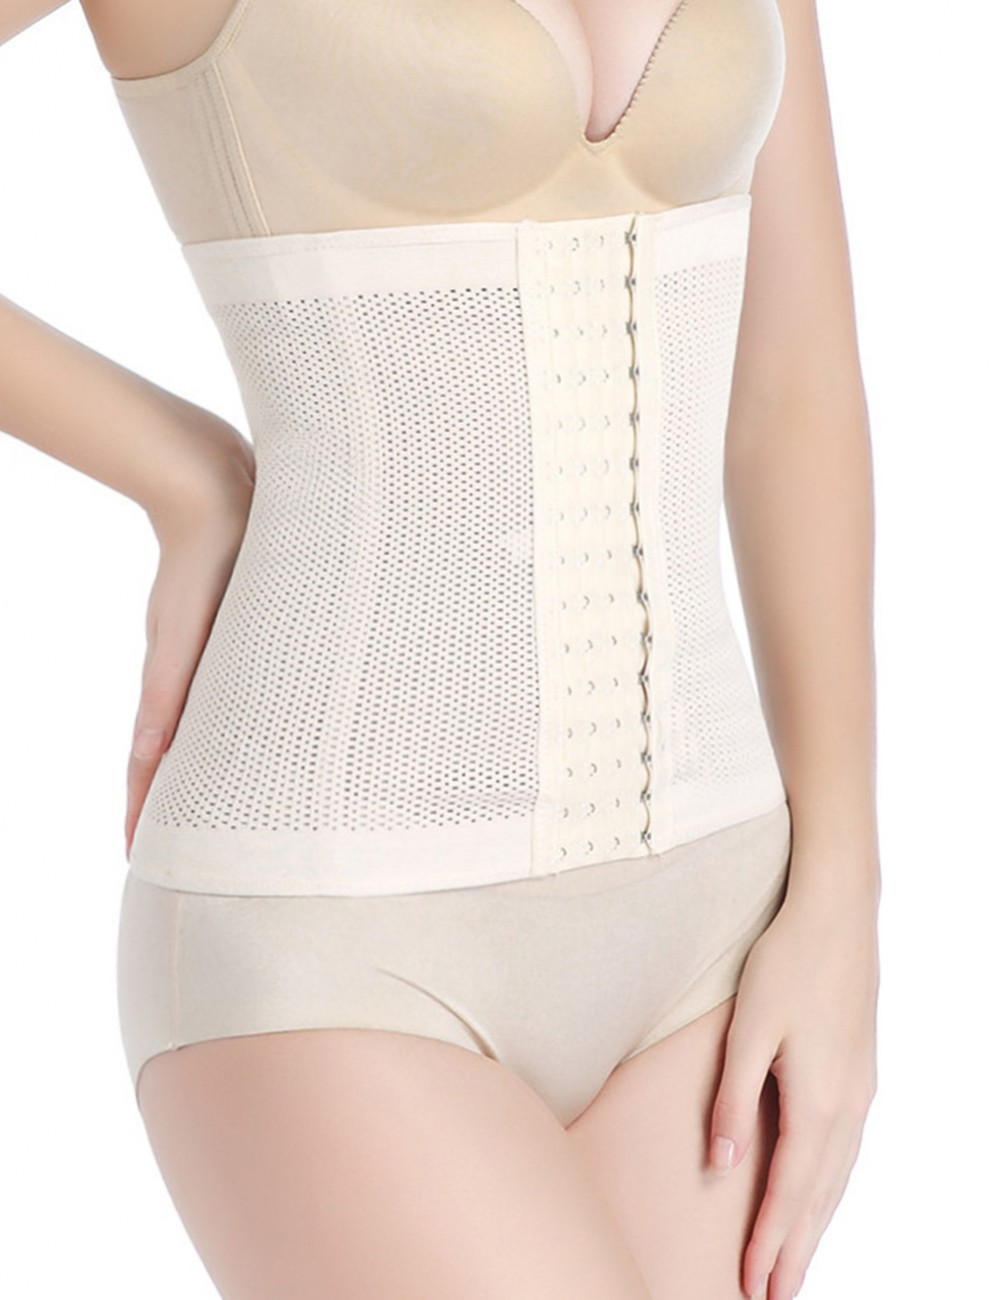 Nude Waist And TummyTrainer 4 Rows Of Hooks Queen Size Slimming Belly